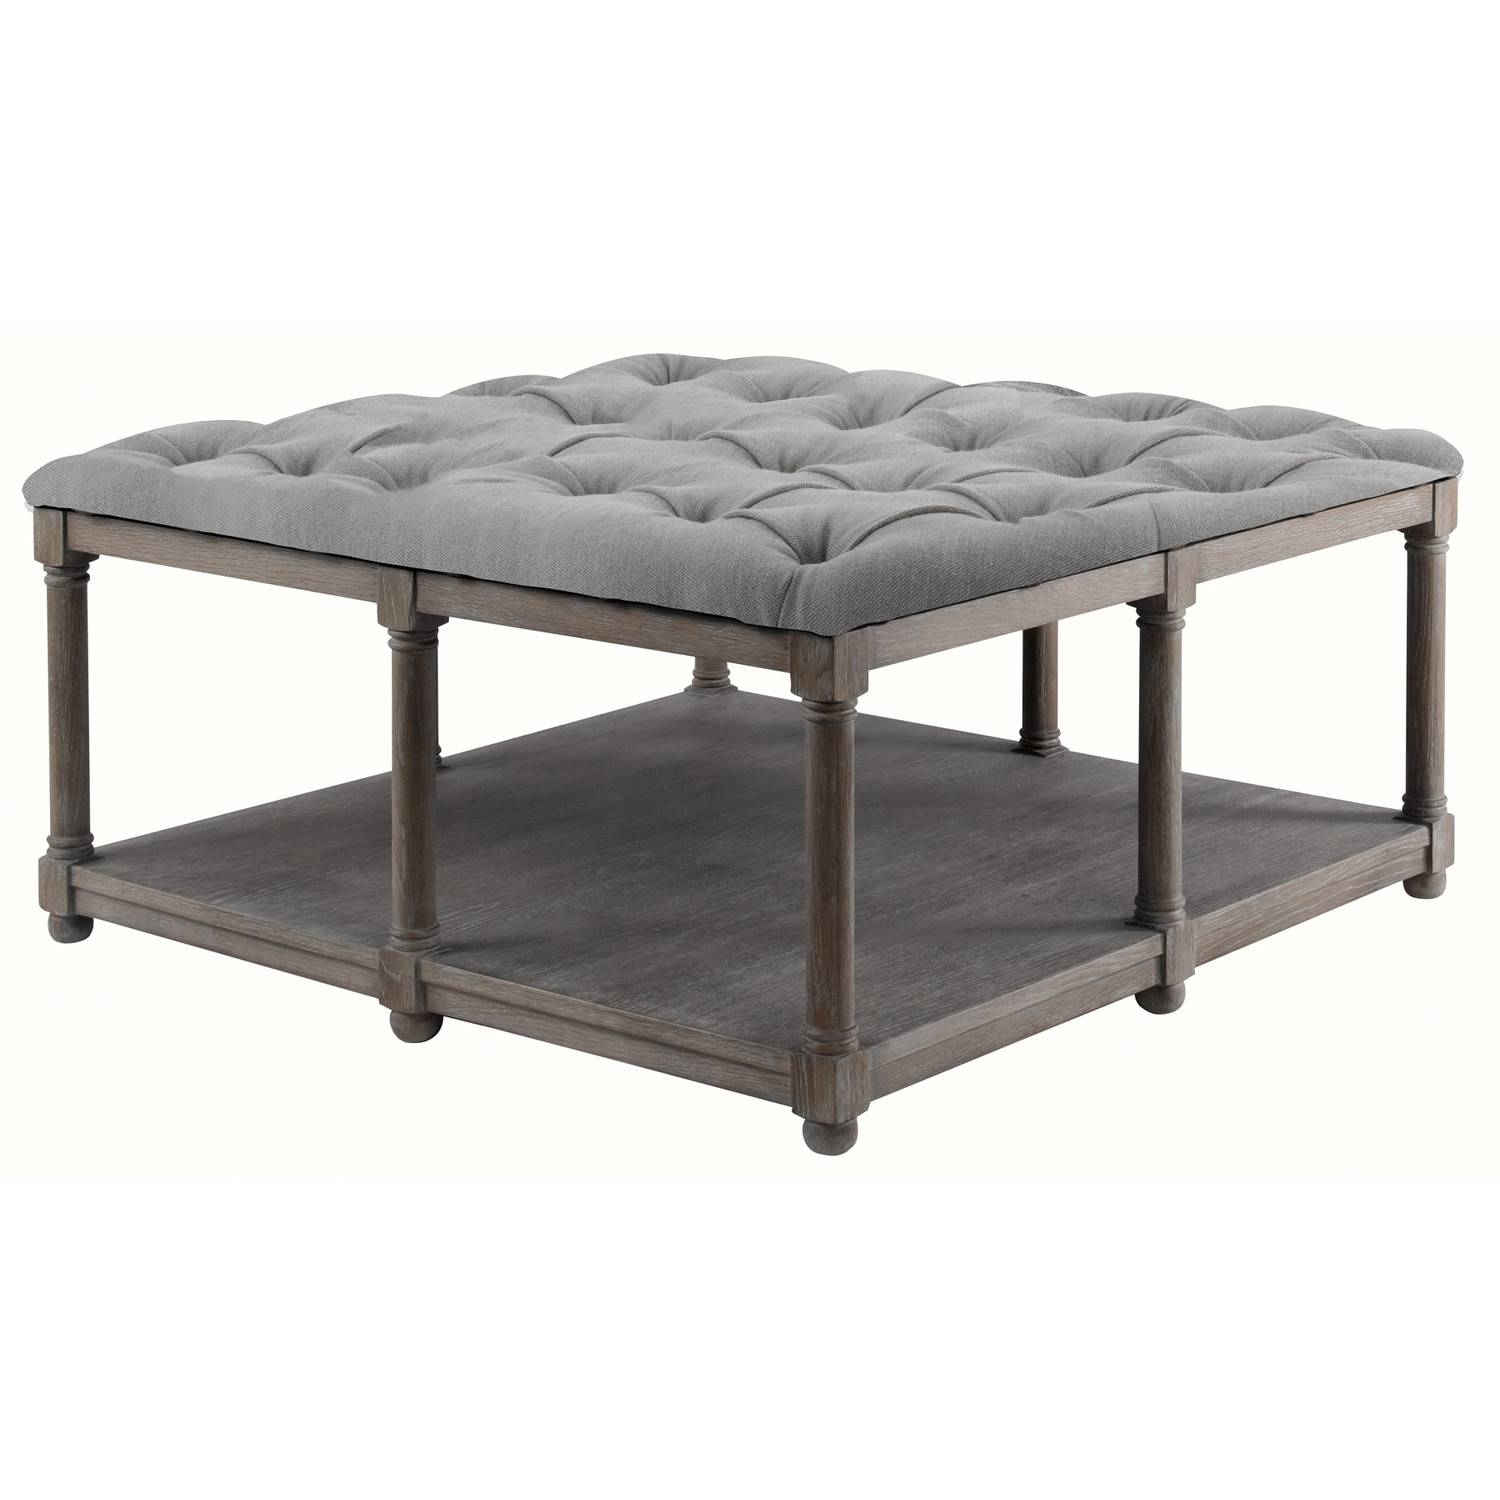 Grey Ottoman Coffee Table | Idi Design with regard to Grey Coffee Tables (Image 17 of 30)